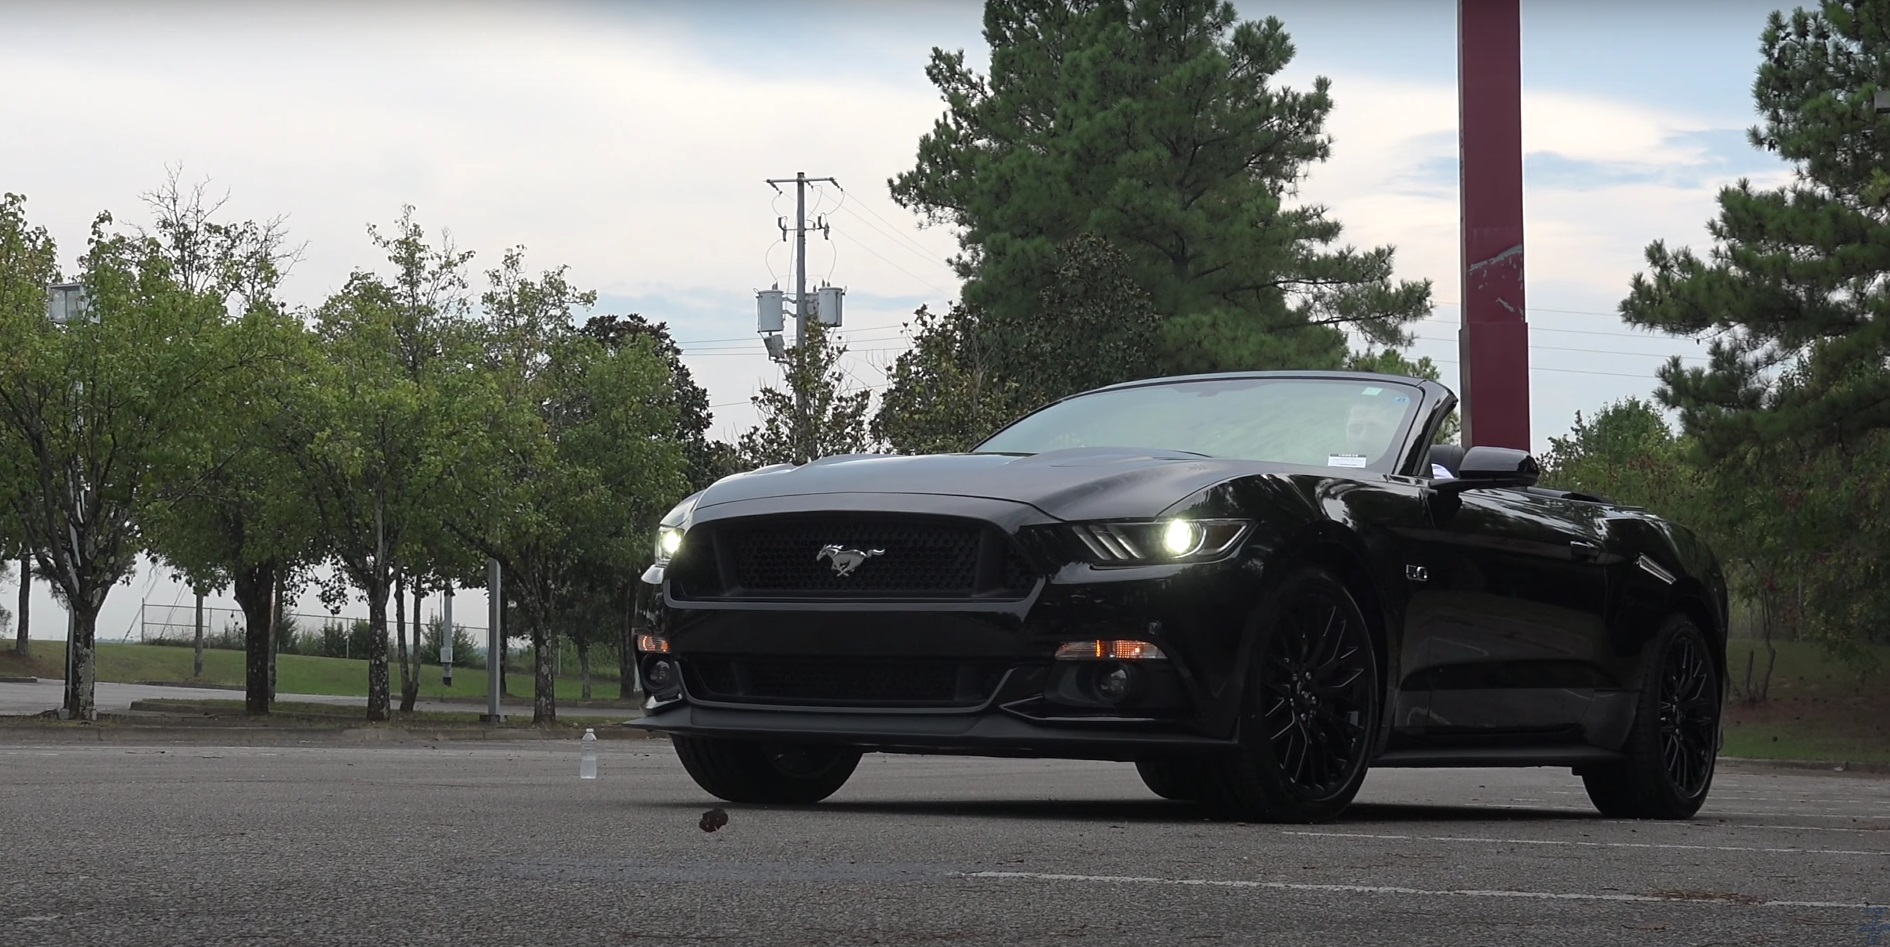 Video: 2016 Ford Mustang - What's New?